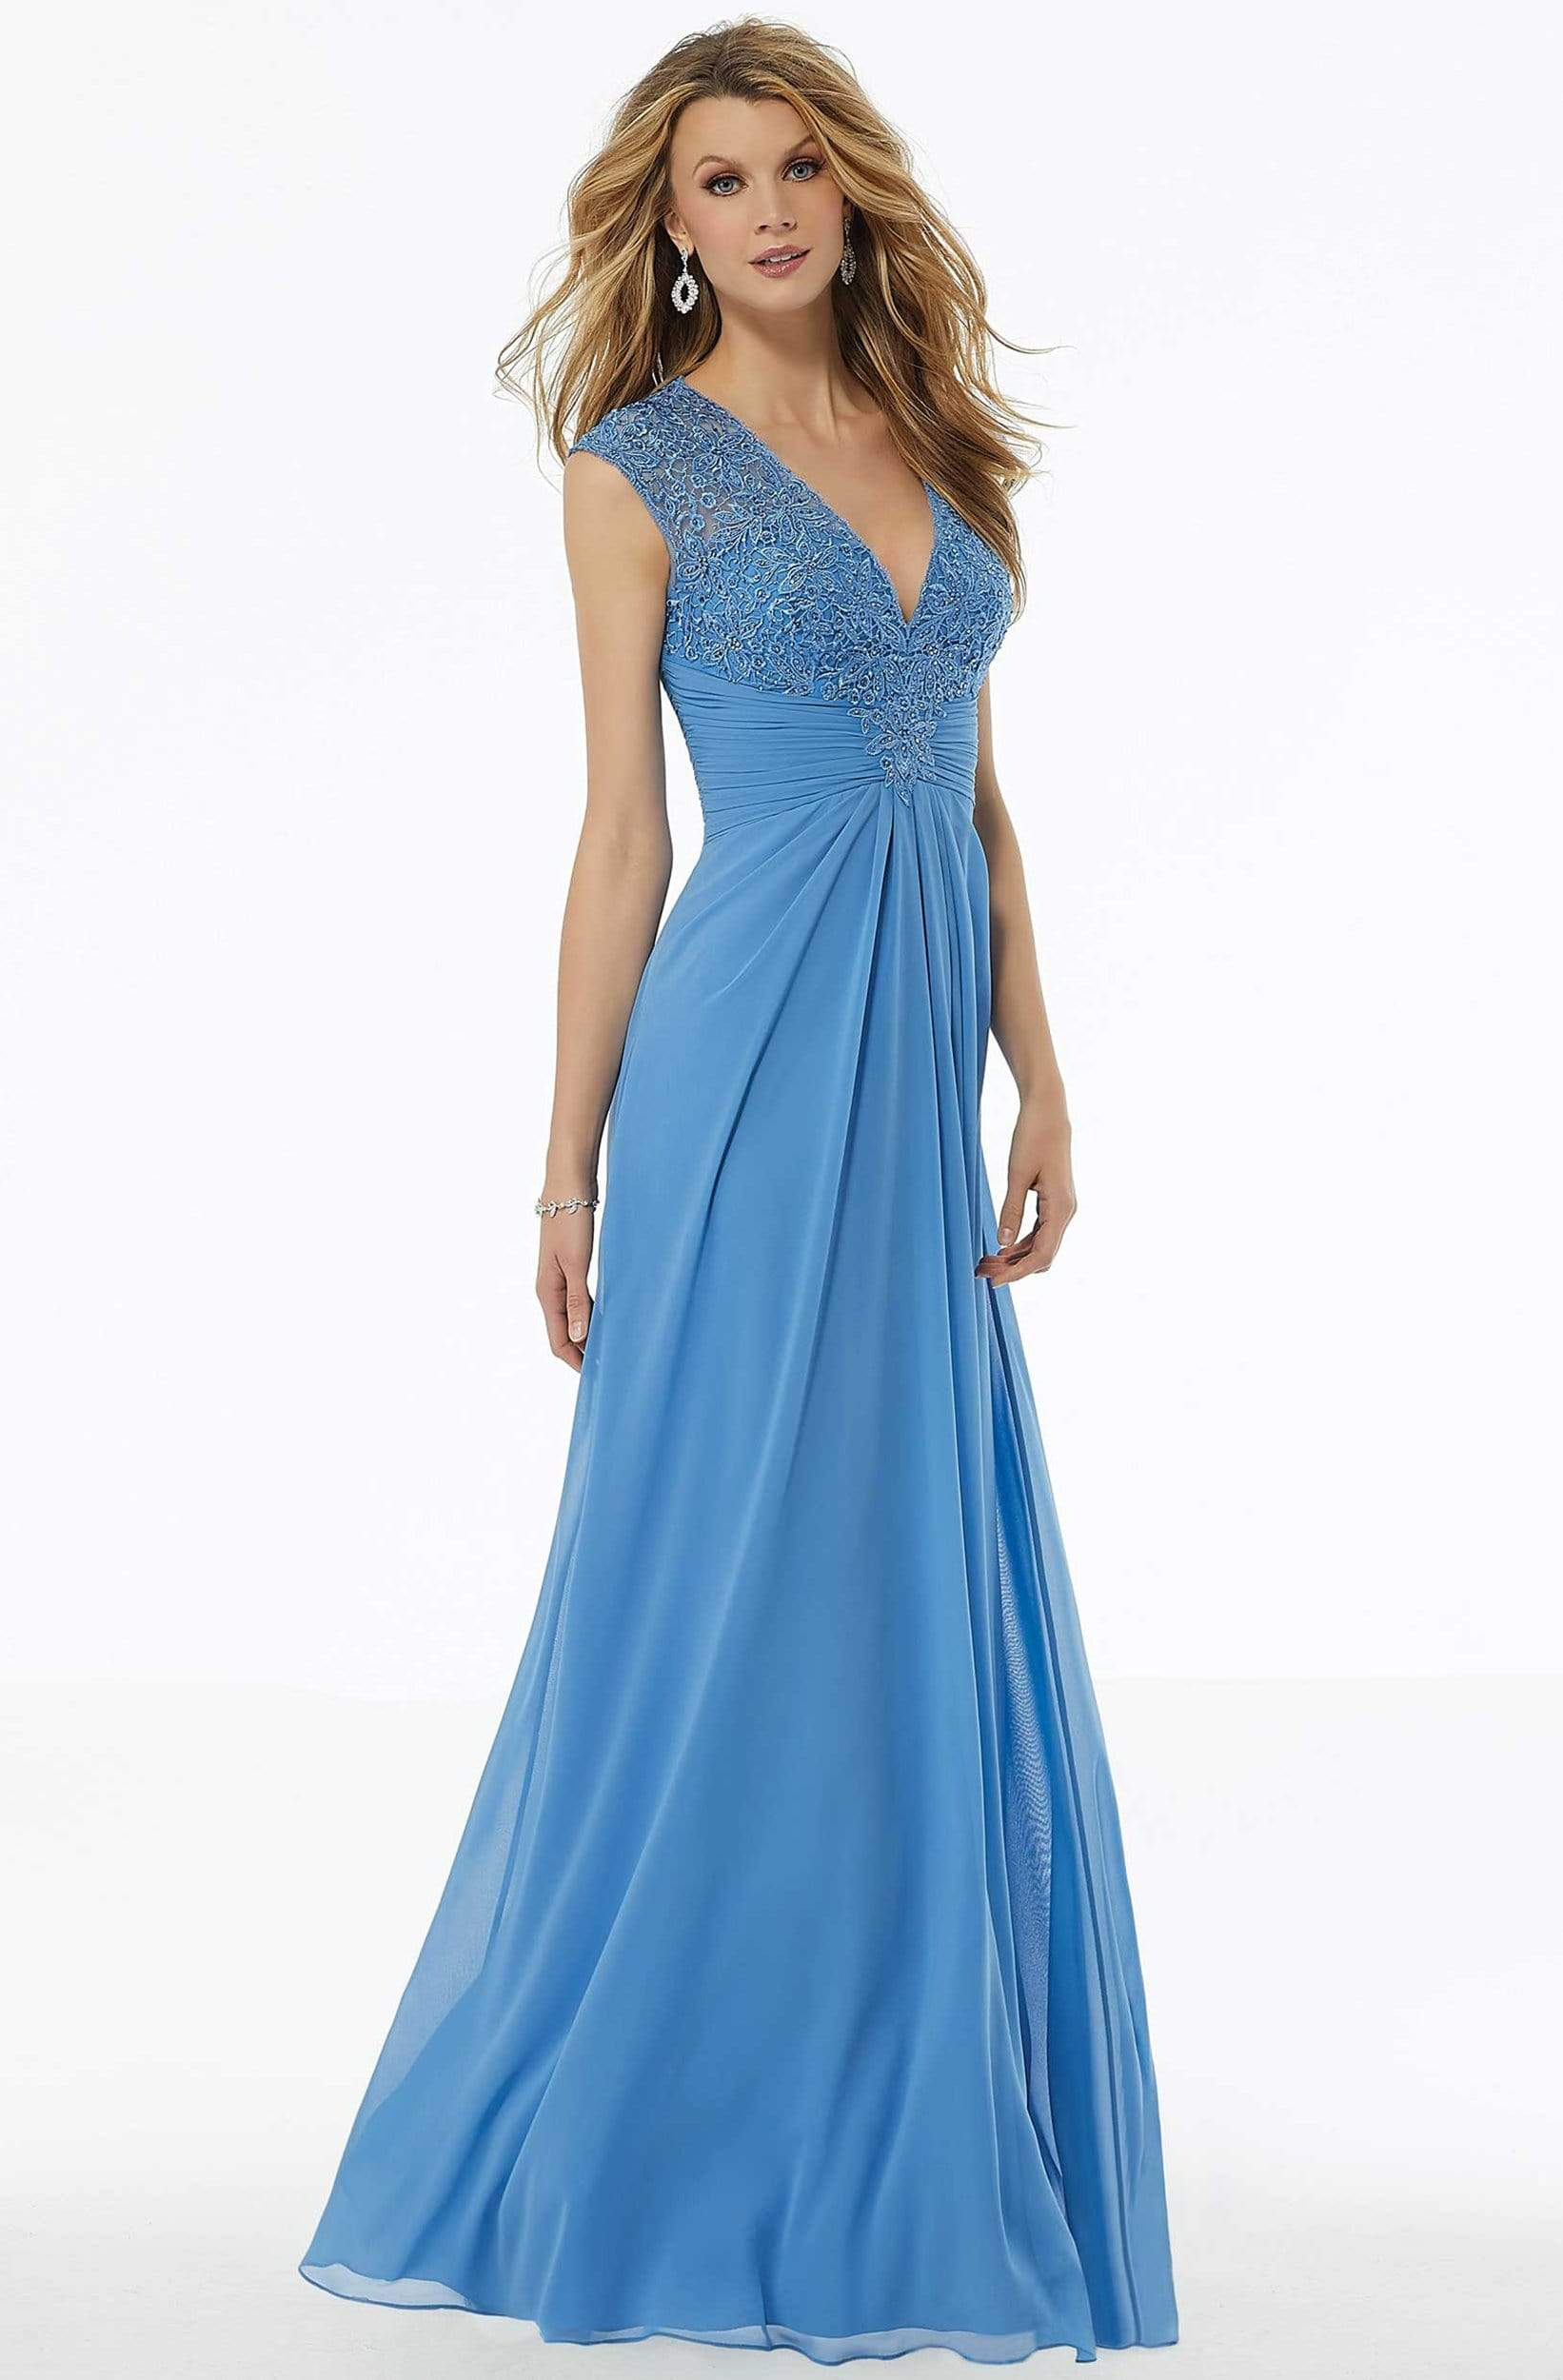 MGNY By Mori Lee - 72129 Beaded Lace Ruched Chiffon Dress Evening Dresses 2 / Blue